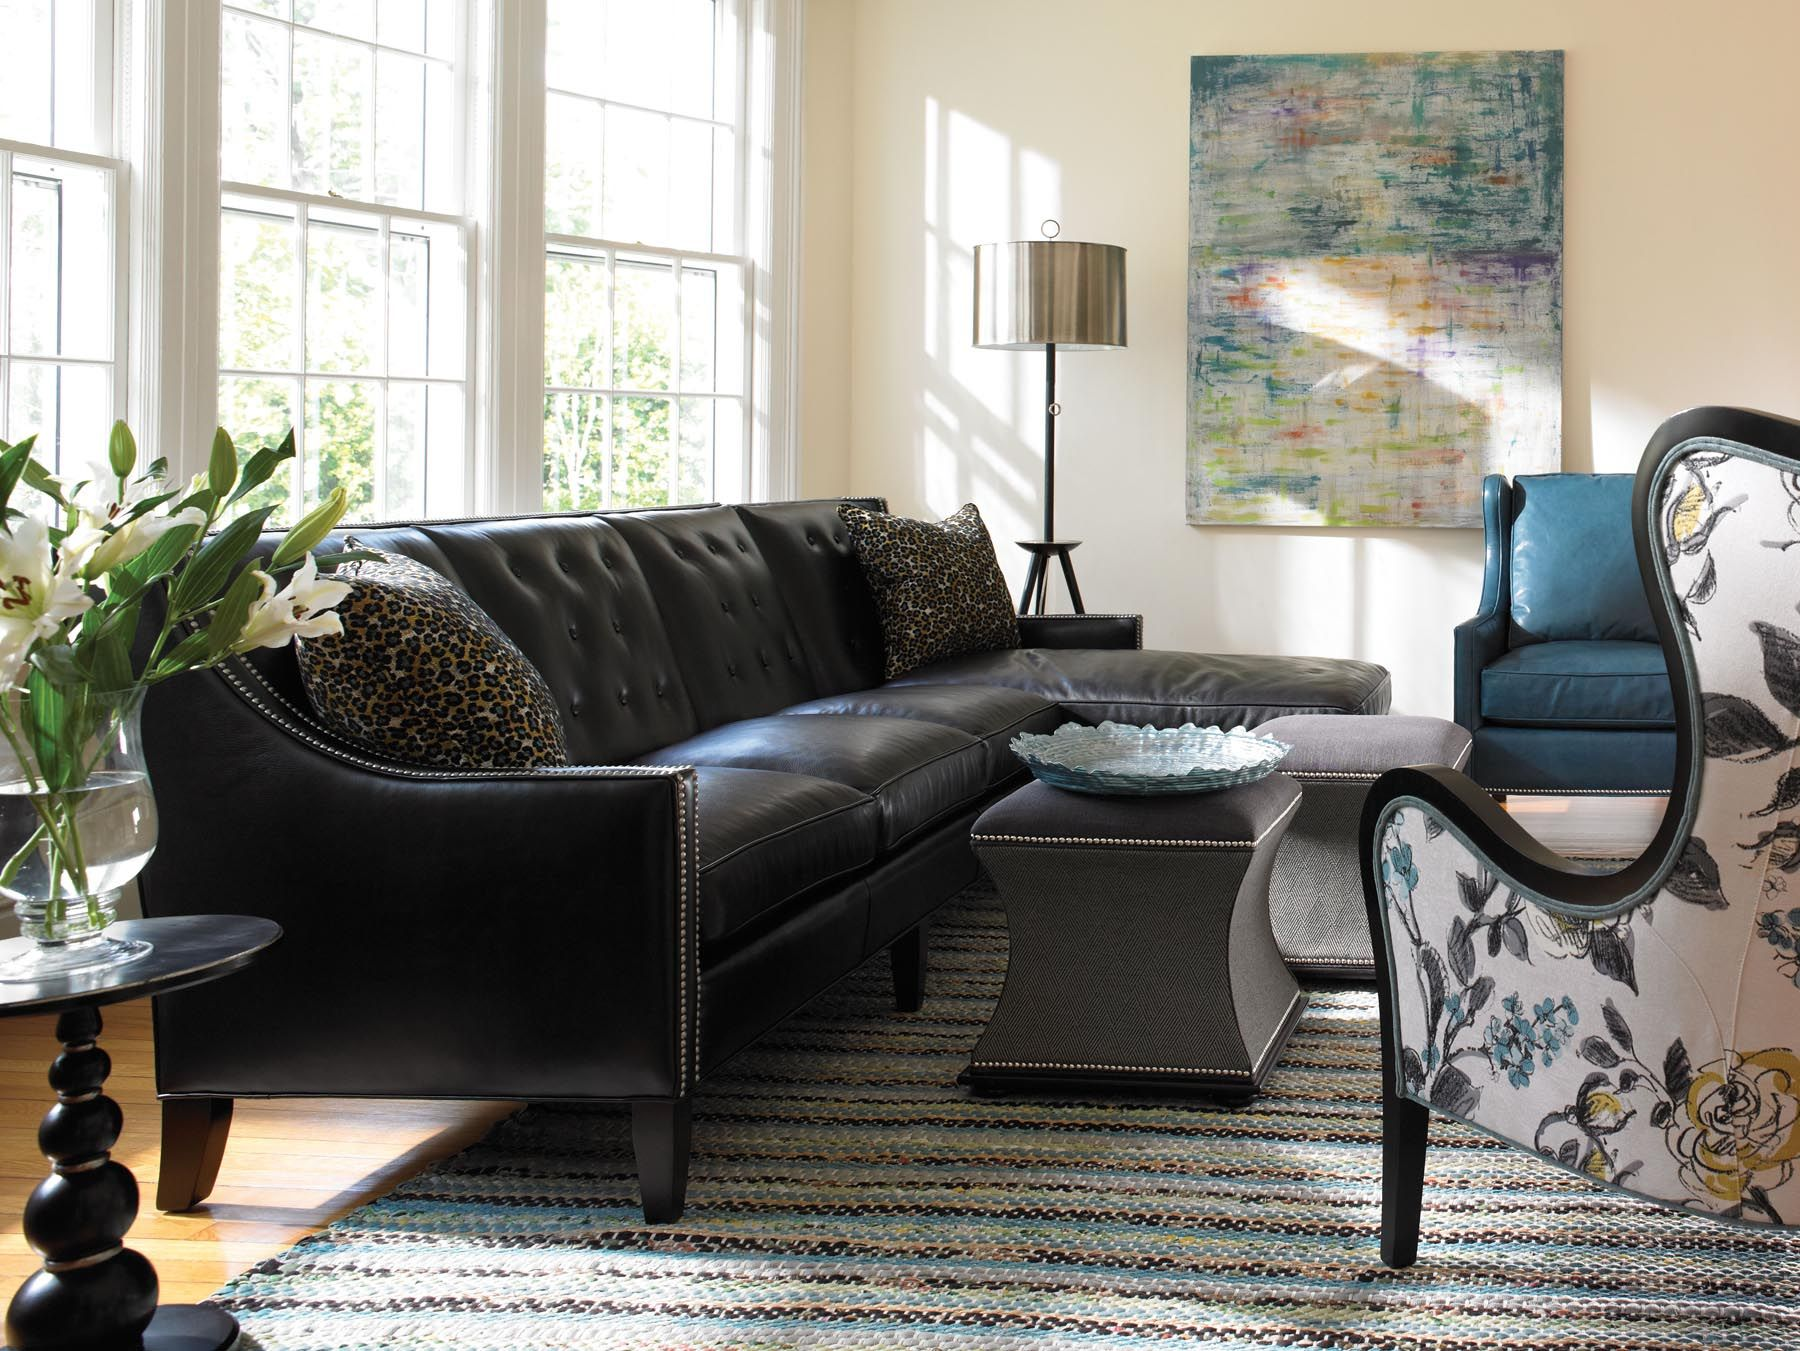 Merveilleux Image Result For WESLEY HALL LIVING ROOMS